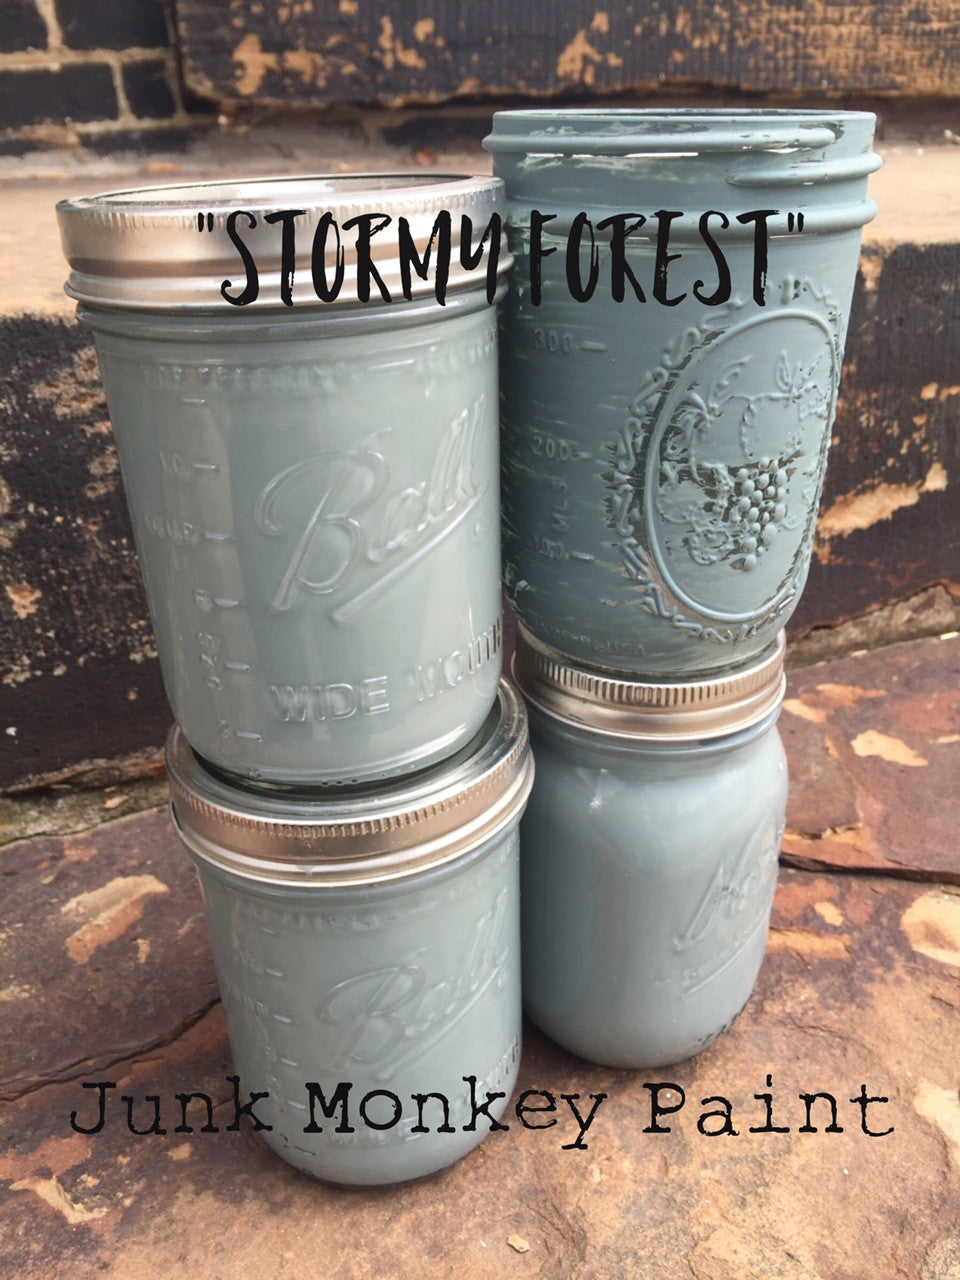 Junk Monkey Paint - Stormy Forest